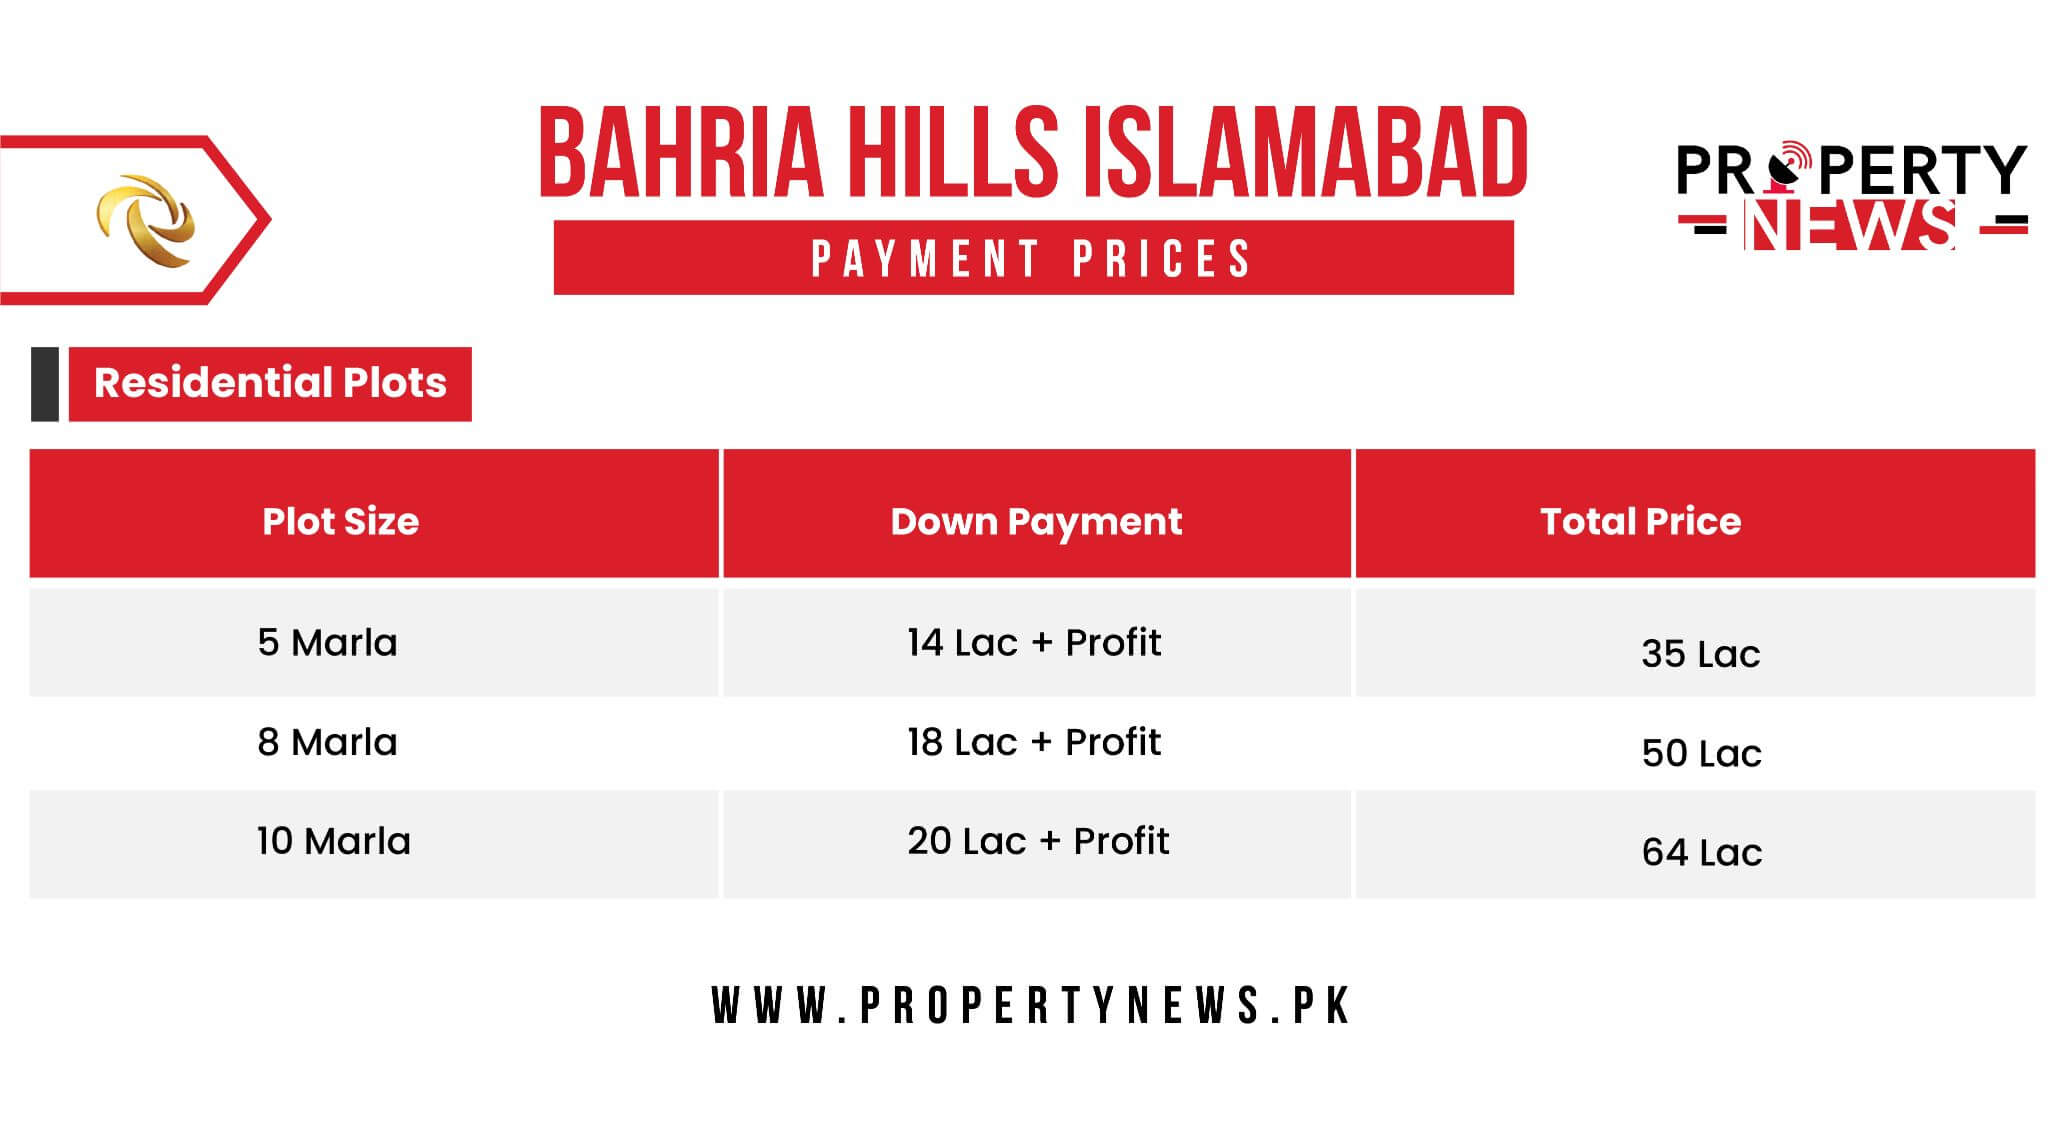 Bahria Hills Payment Plans for residential plots